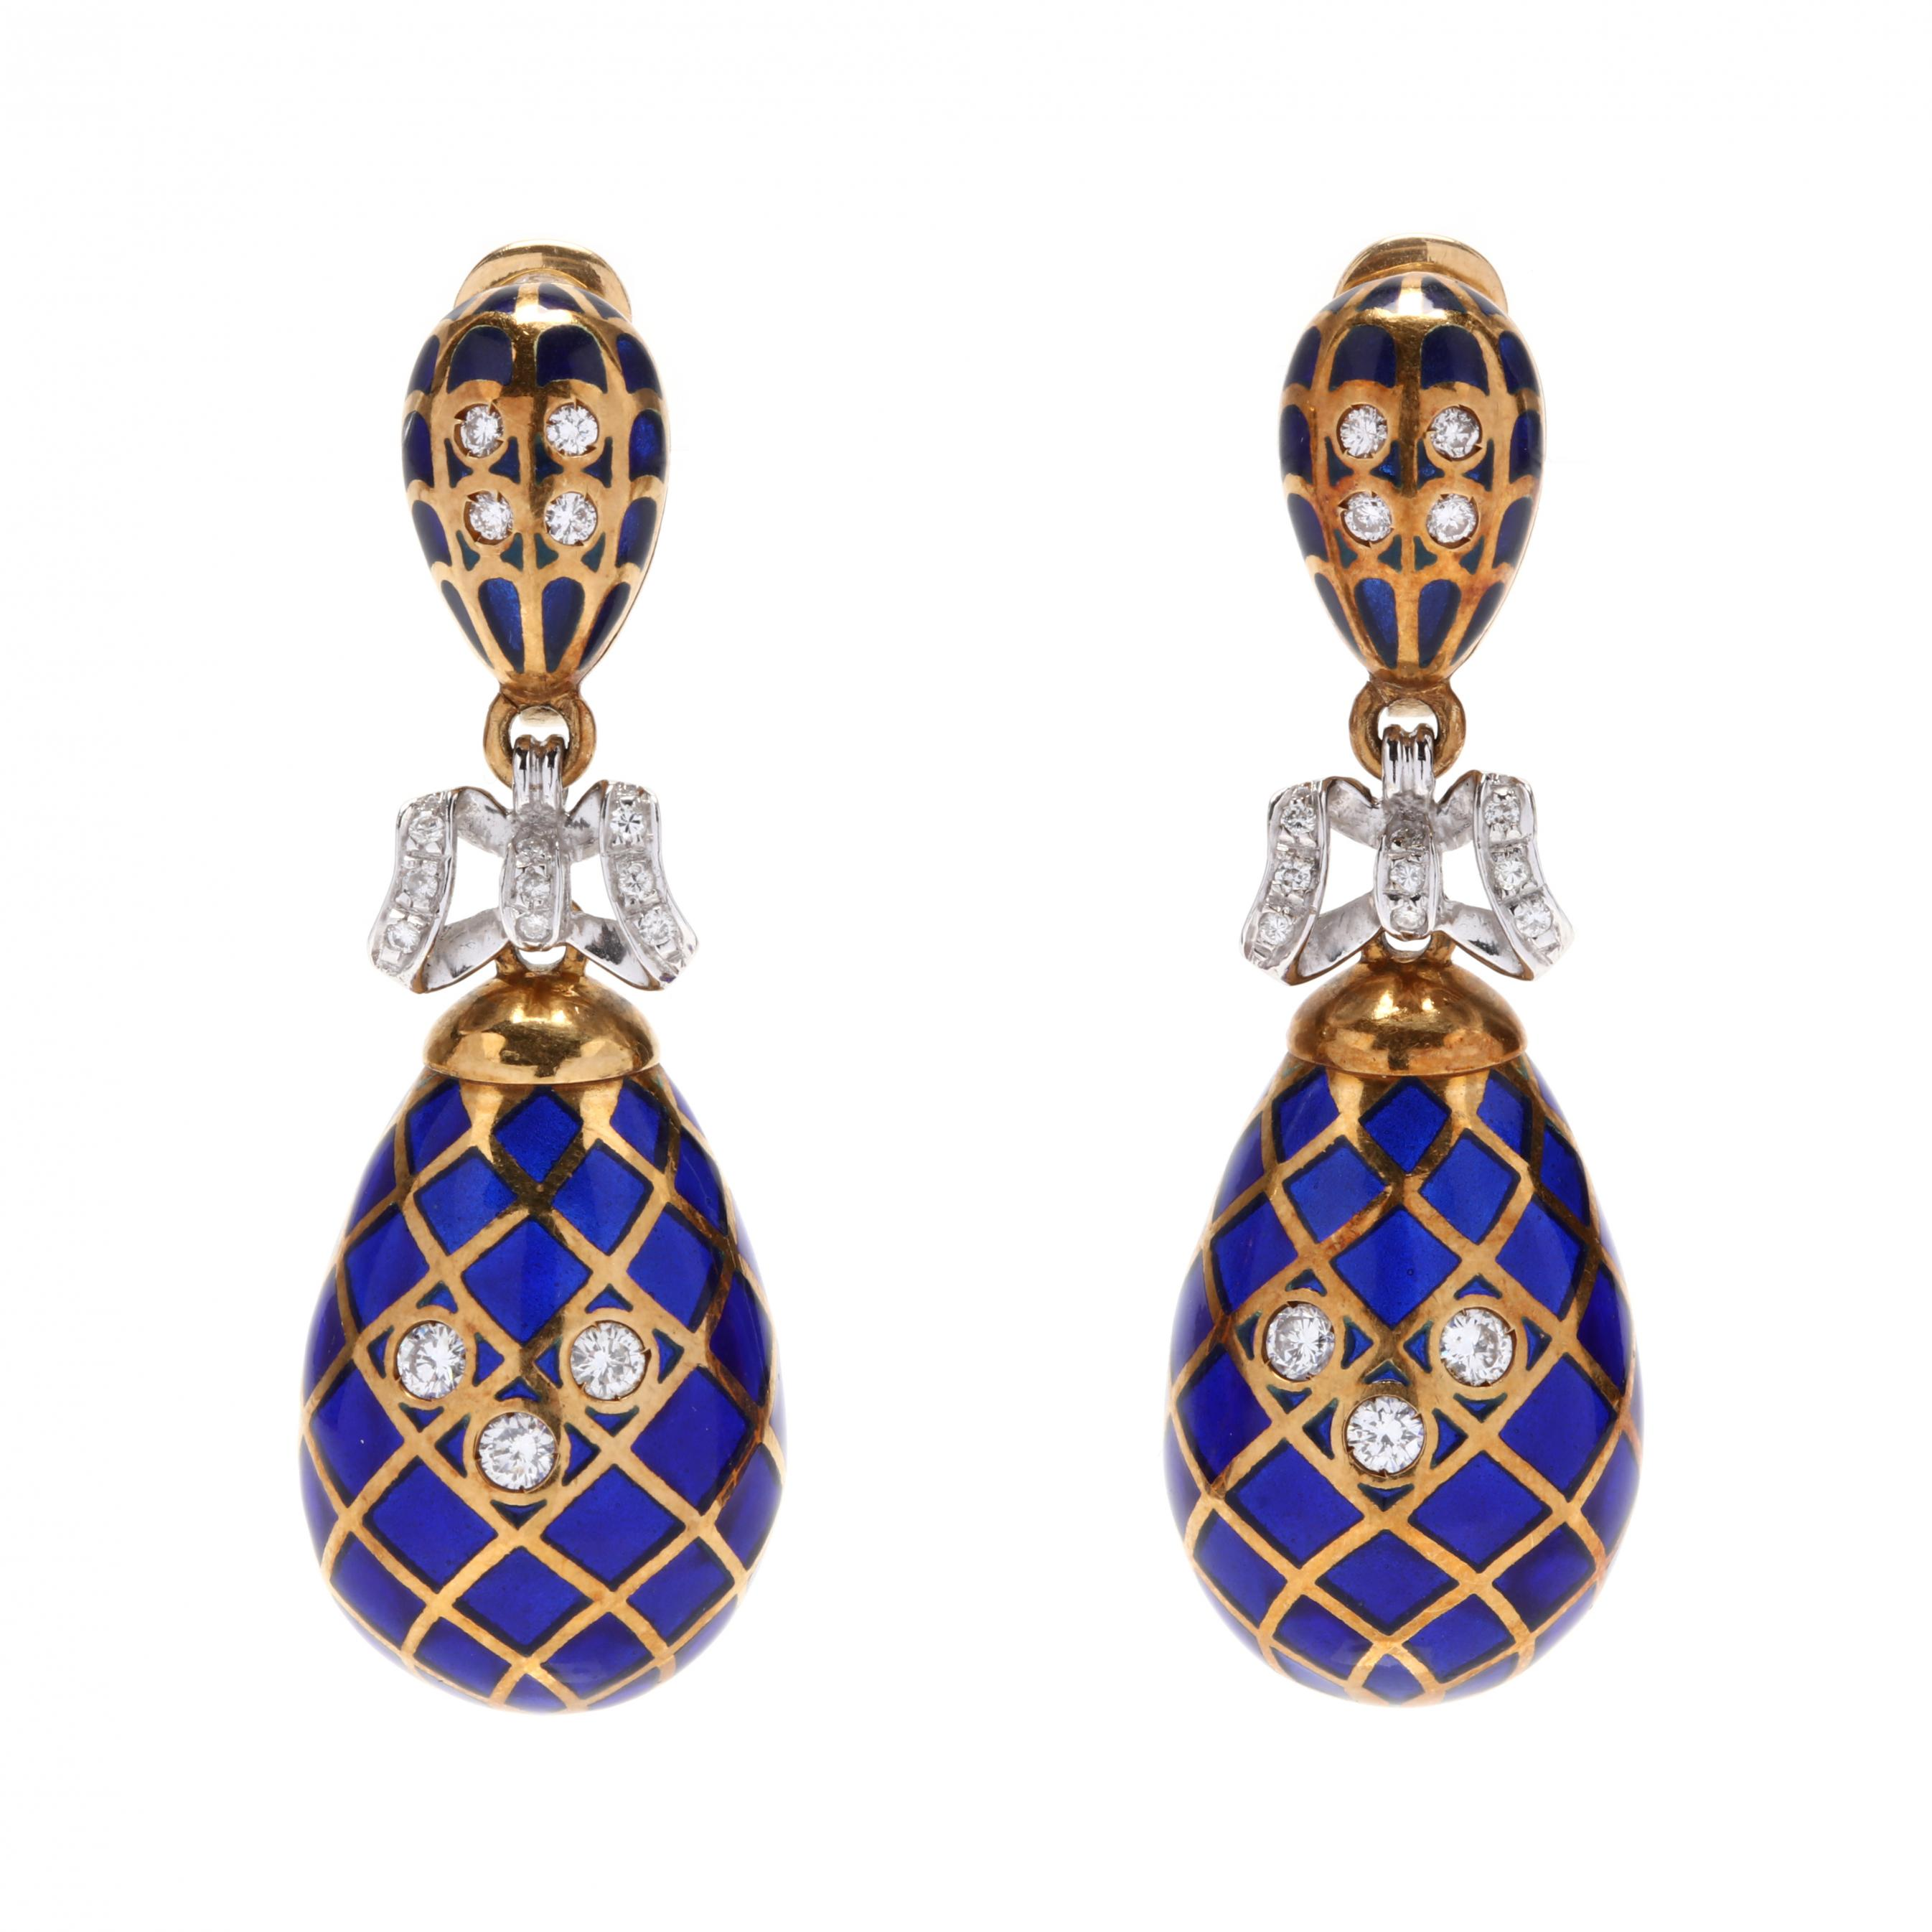 18kt-bi-color-gold-enamel-and-diamond-earrings